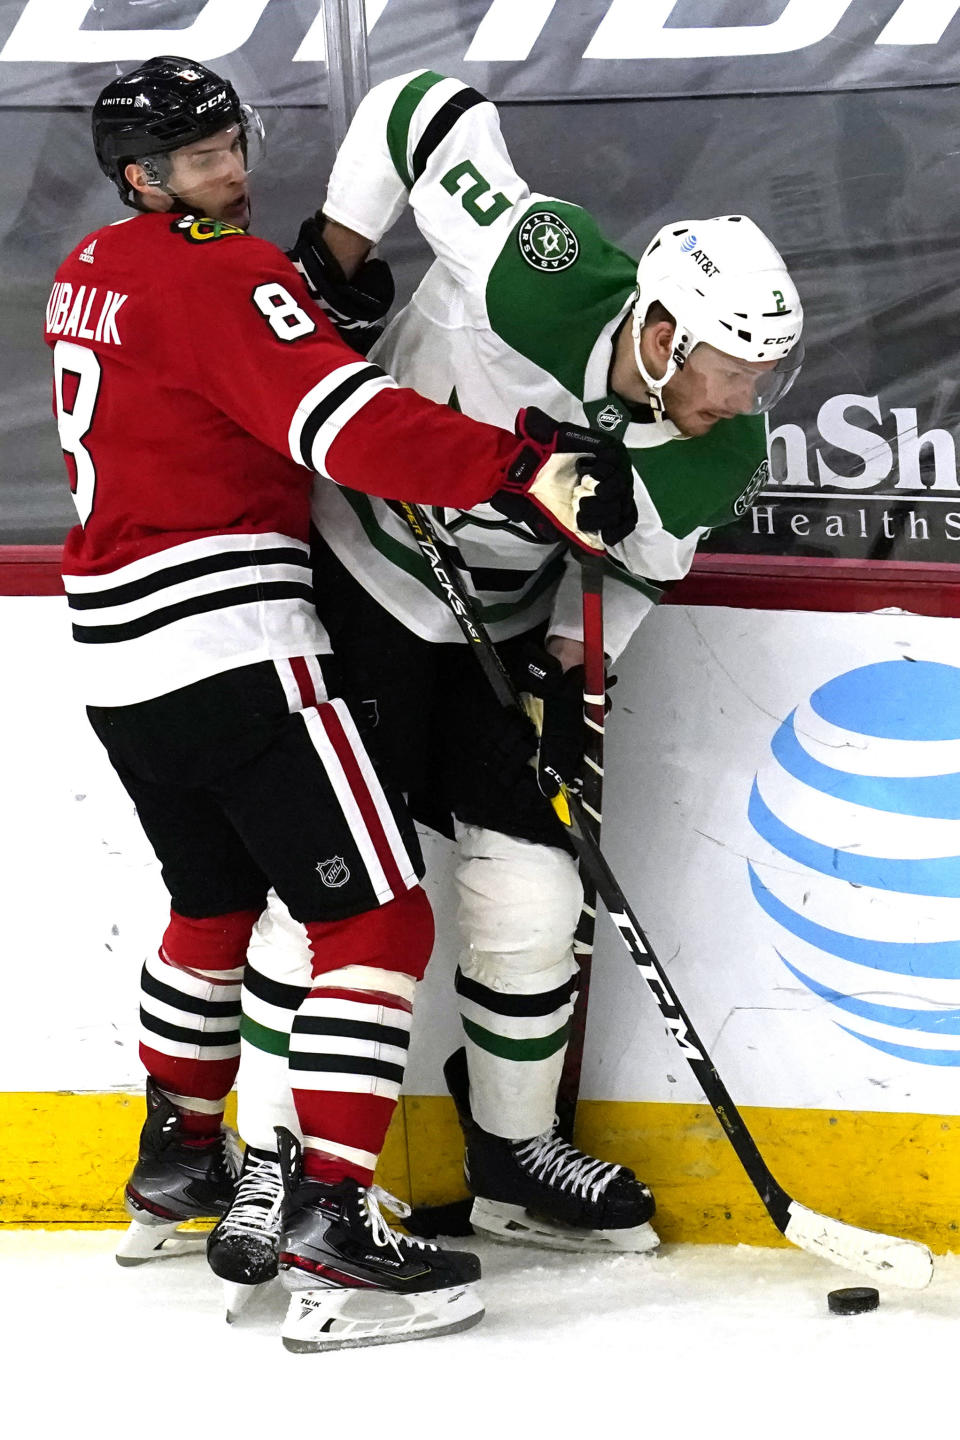 Dallas Stars defenseman Jamie Oleksiak, right, works for the puck against Chicago Blackhawks left wing Dominik Kubalik during the first period of an NHL hockey game in Chicago, Sunday, May 9, 2021. (AP Photo/Nam Y. Huh)